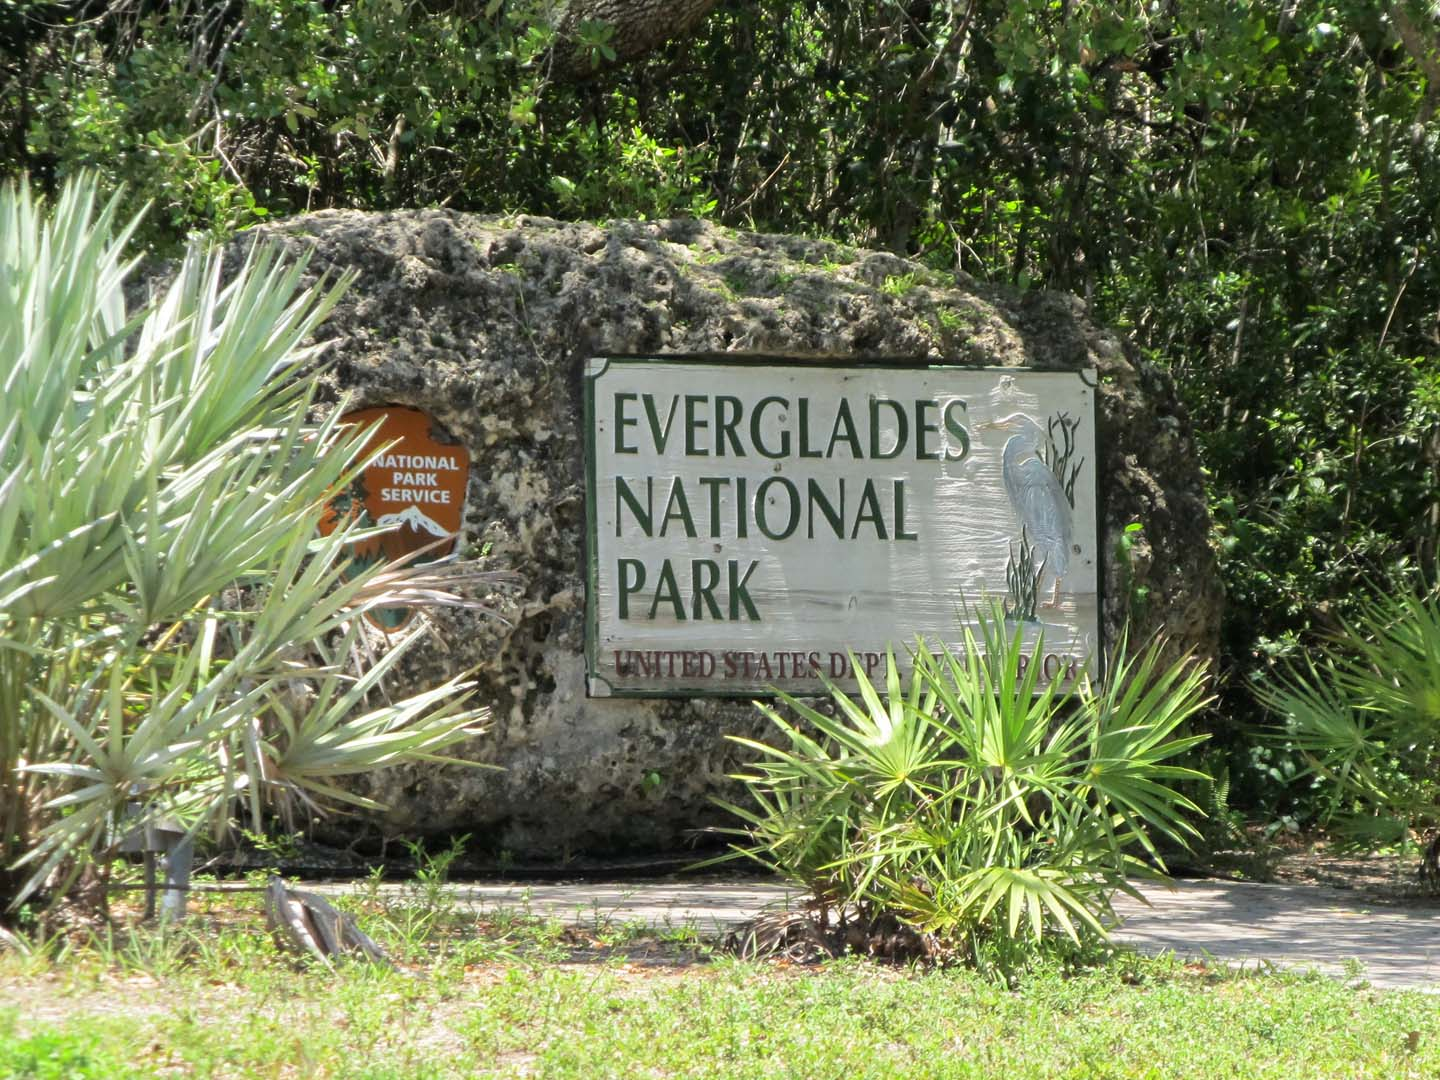 research paper outline for everglades national park The south florida natural resources center (sfnrc) conducts  everglades  national park is one of seven parks encompassed by the south.